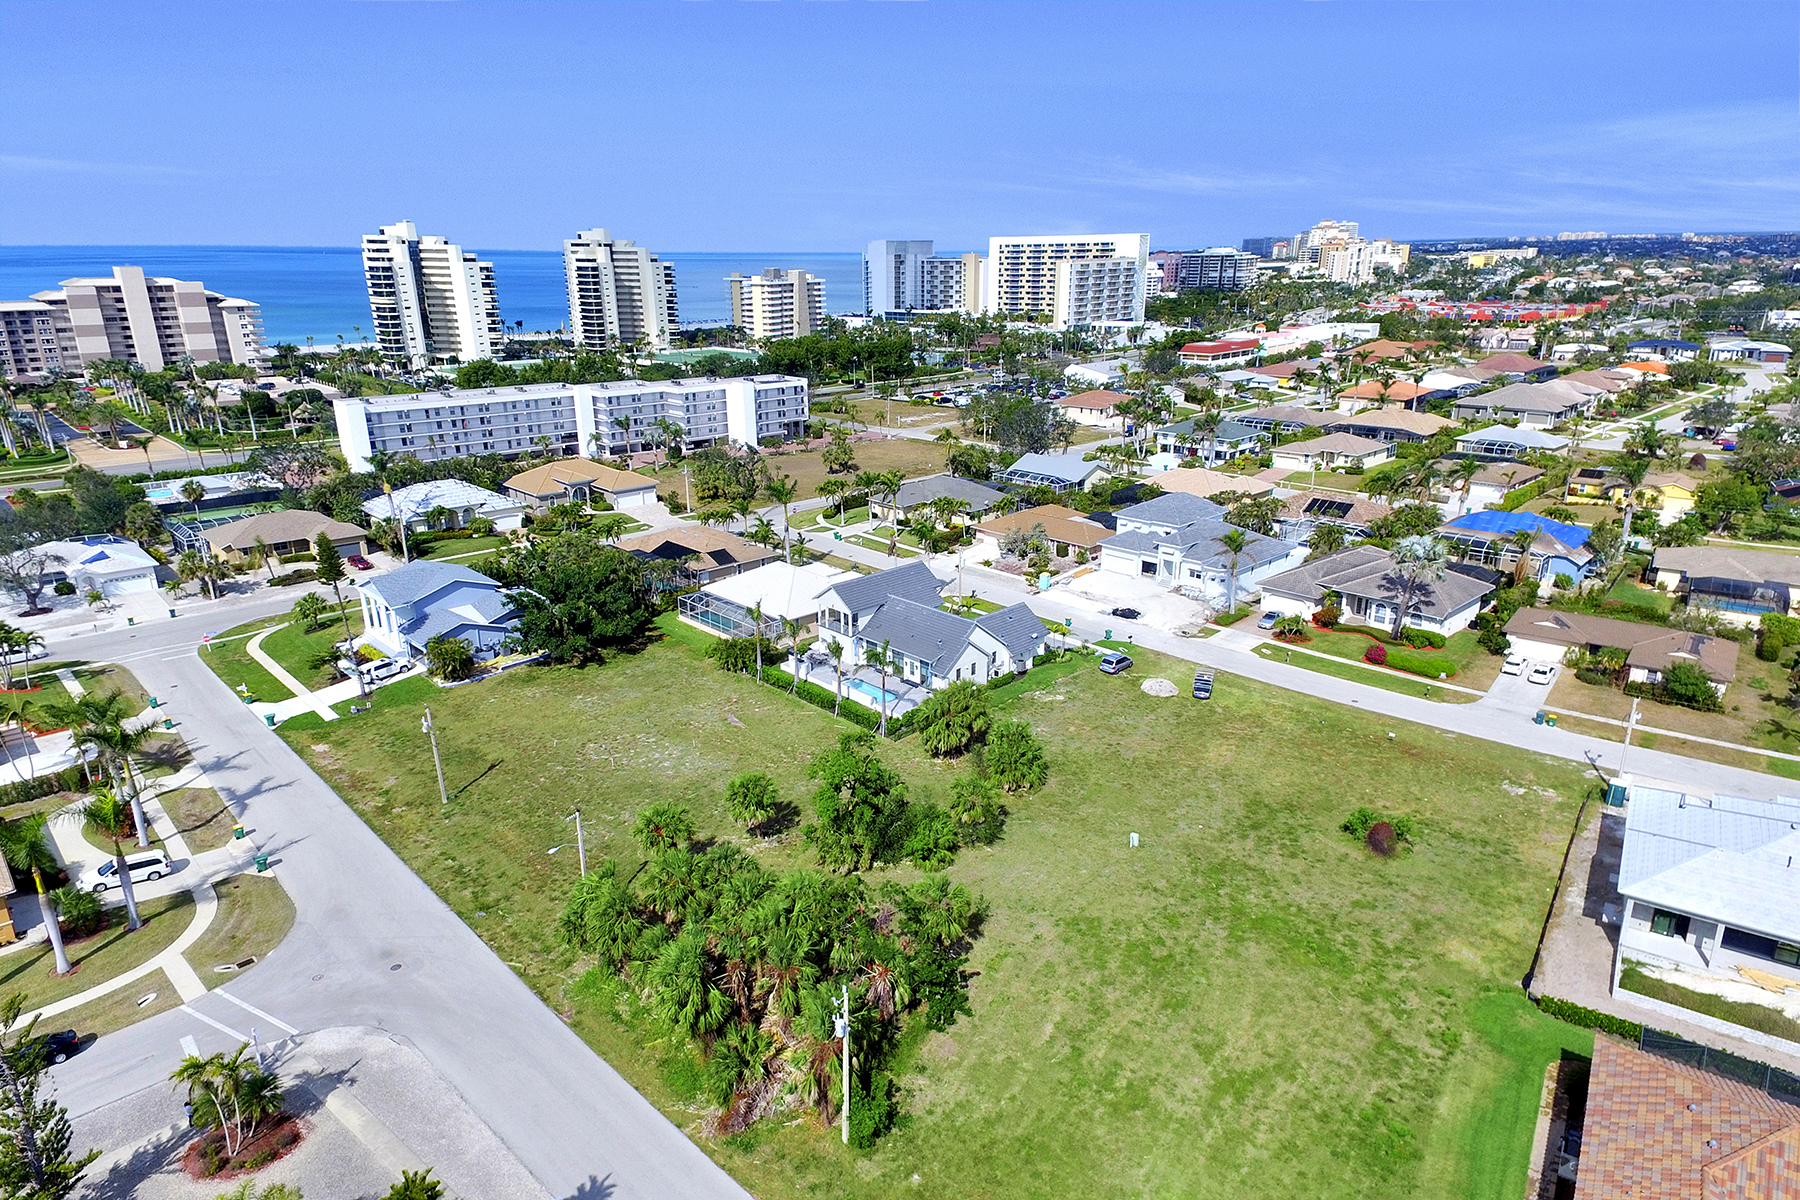 Land for Sale at MARCO ISLAND 828 Amber Dr, Marco Island, Florida, 34145 United States